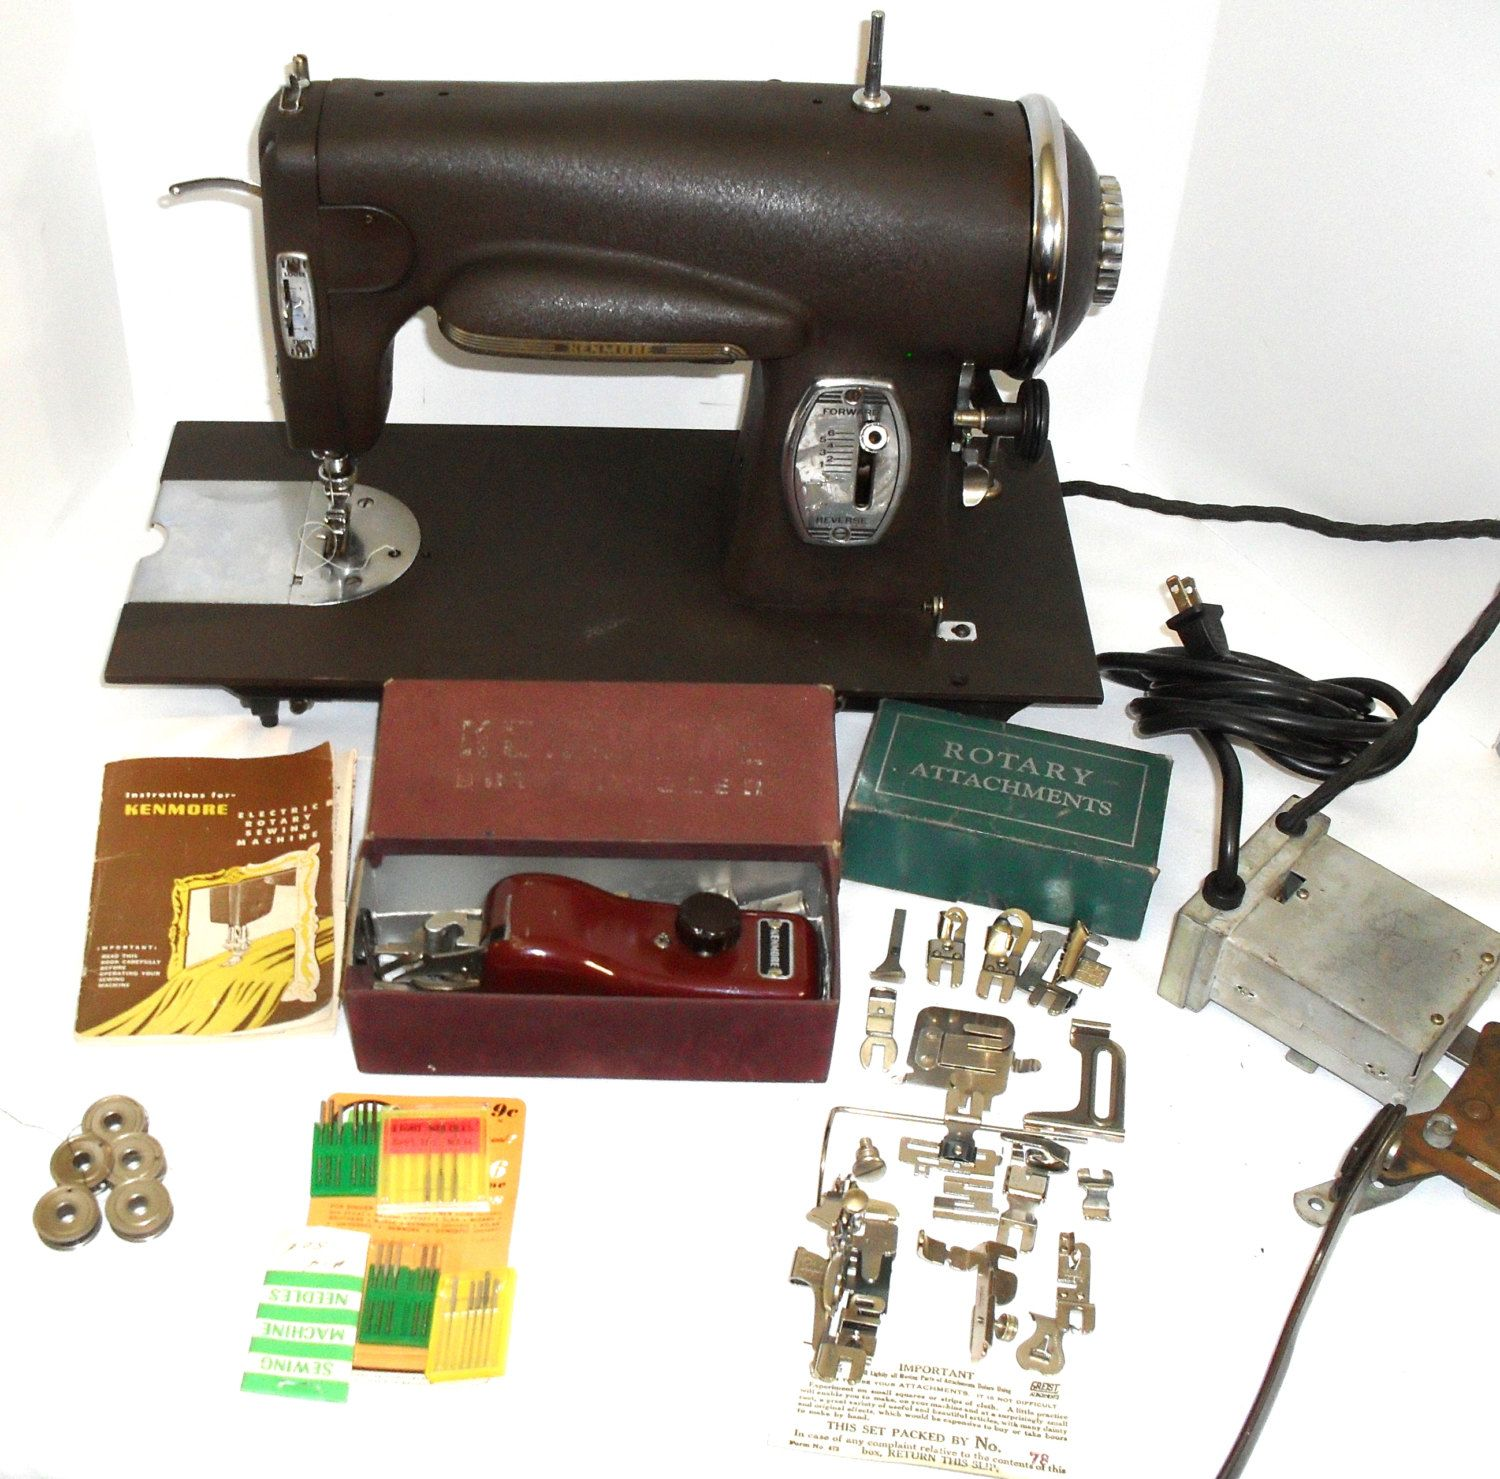 small resolution of 1940s kenmore 95 rotary heavy duty sewing machine model 117 959 w buttonholer manual needles bobbins and attachments serviced ready to sew by